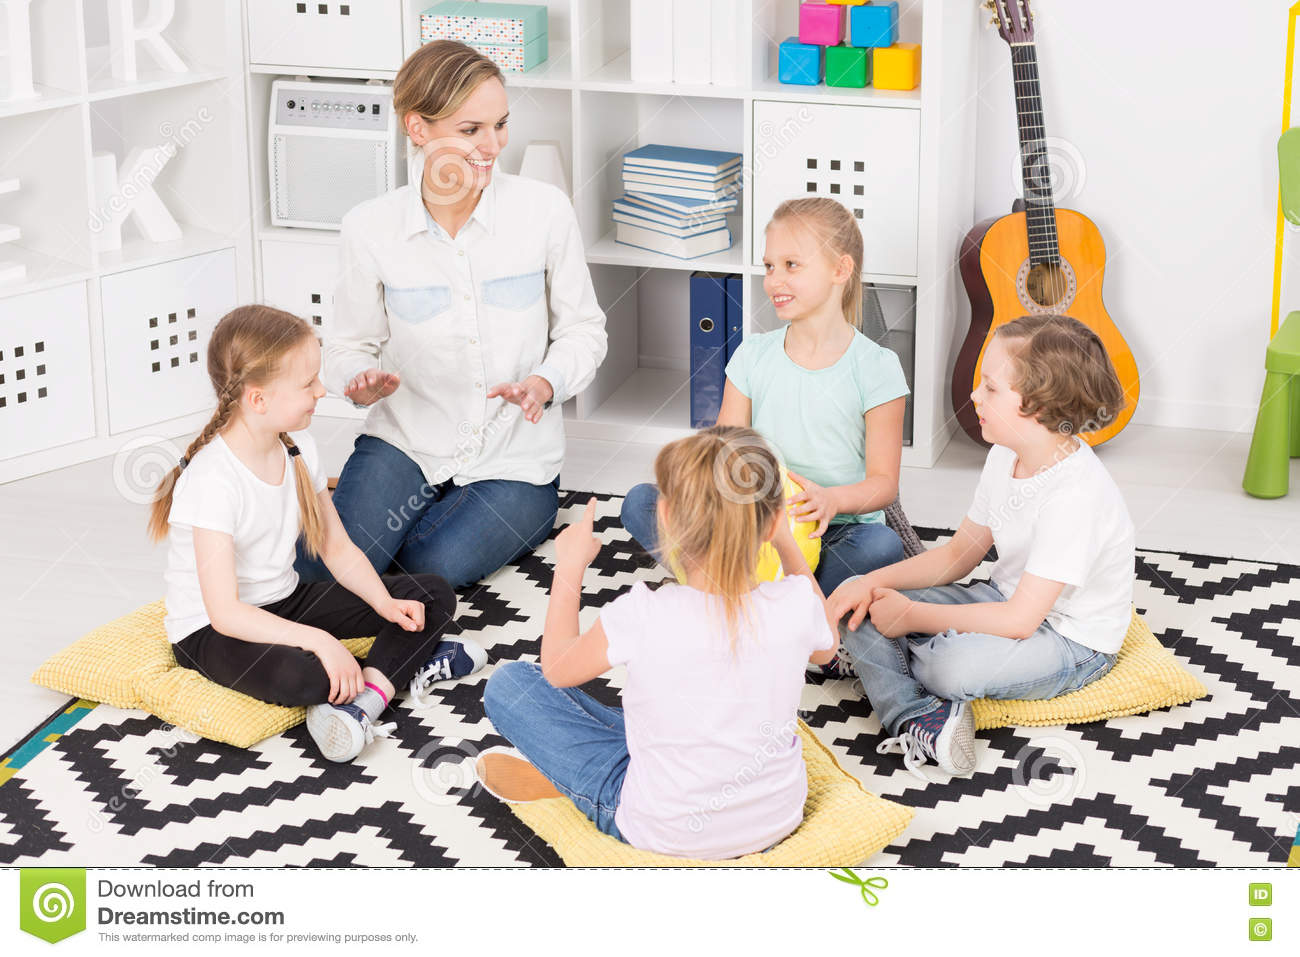 Colourful music classes in a friendly school